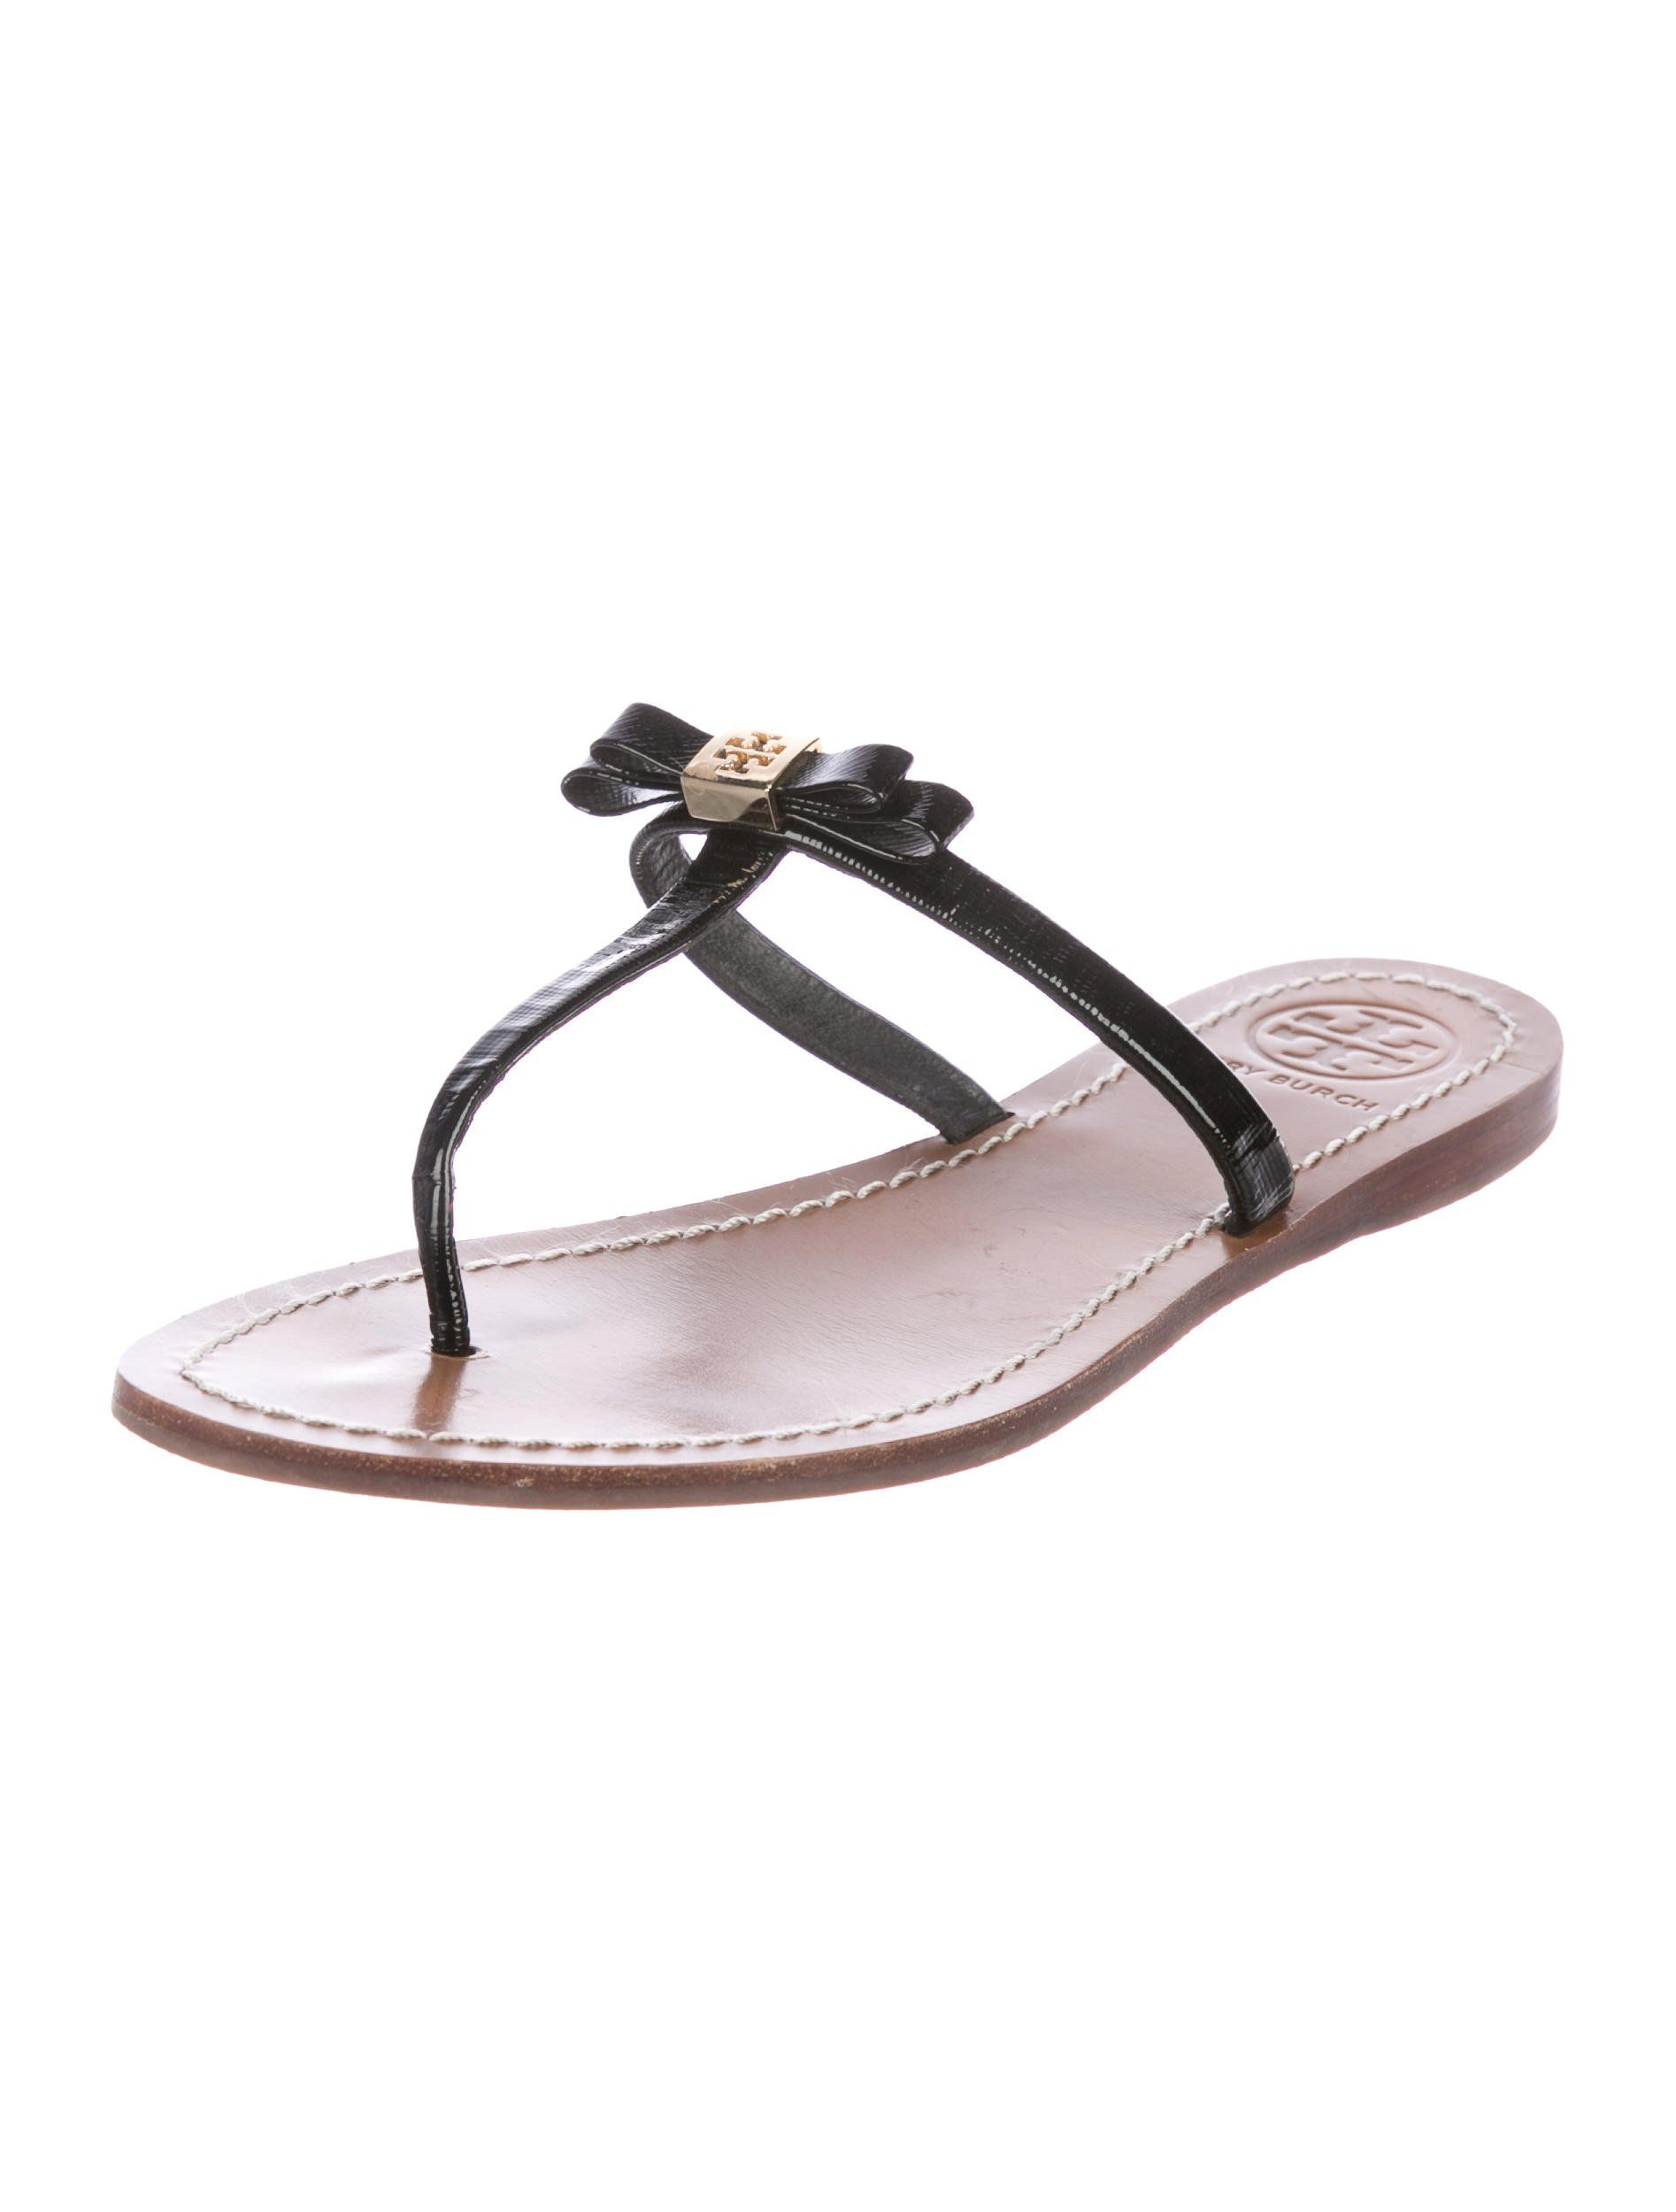 c2de267fa Black patent leather Tory Burch thong sandals with bow accents featuring  gold-tone logo embellishments at uppers and stacked heels. Size not listed